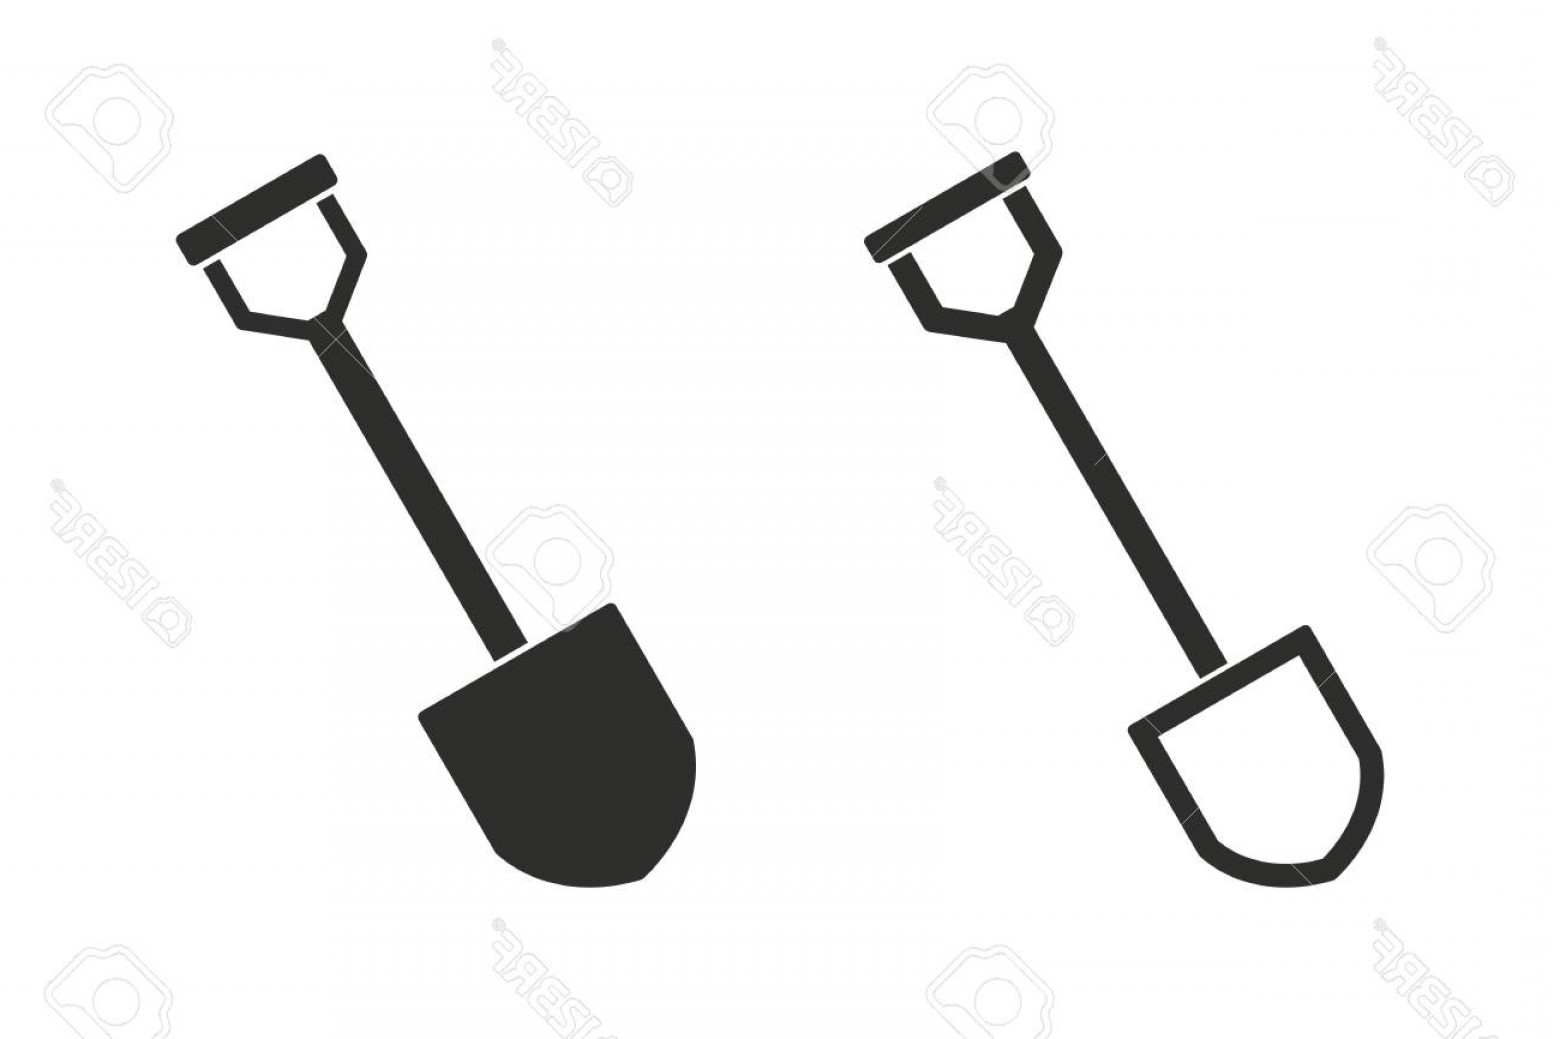 Shovel Vector: Photostock Vector Shovel Vector Icon Illustration Isolated On White Background For Graphic And Web Design